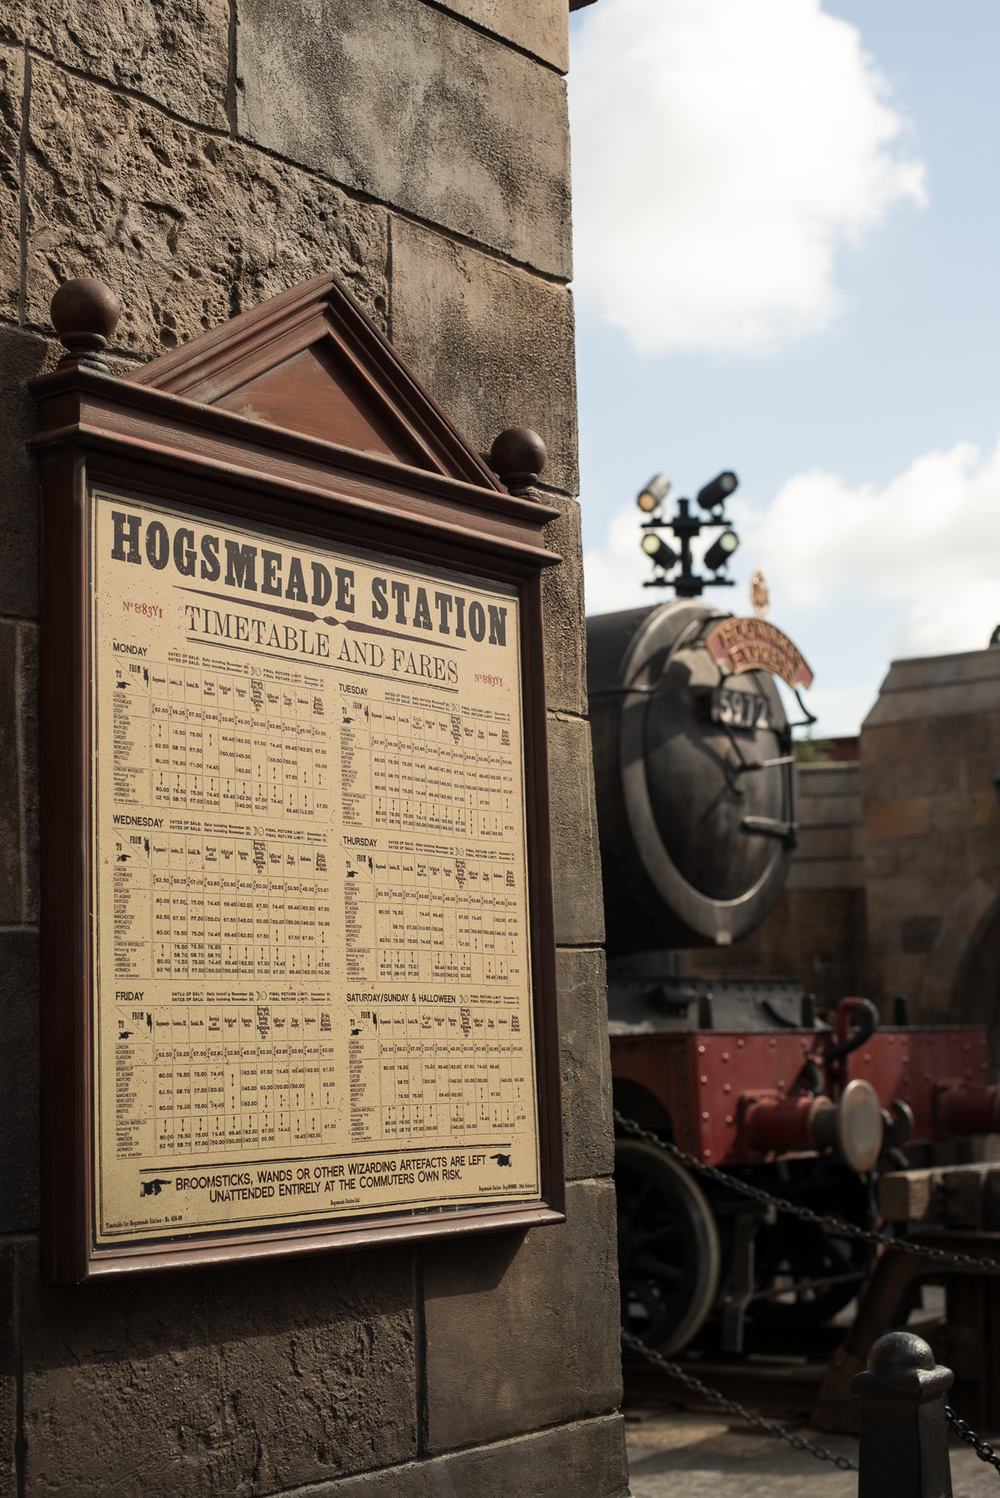 Hogsmeade Station Timetable